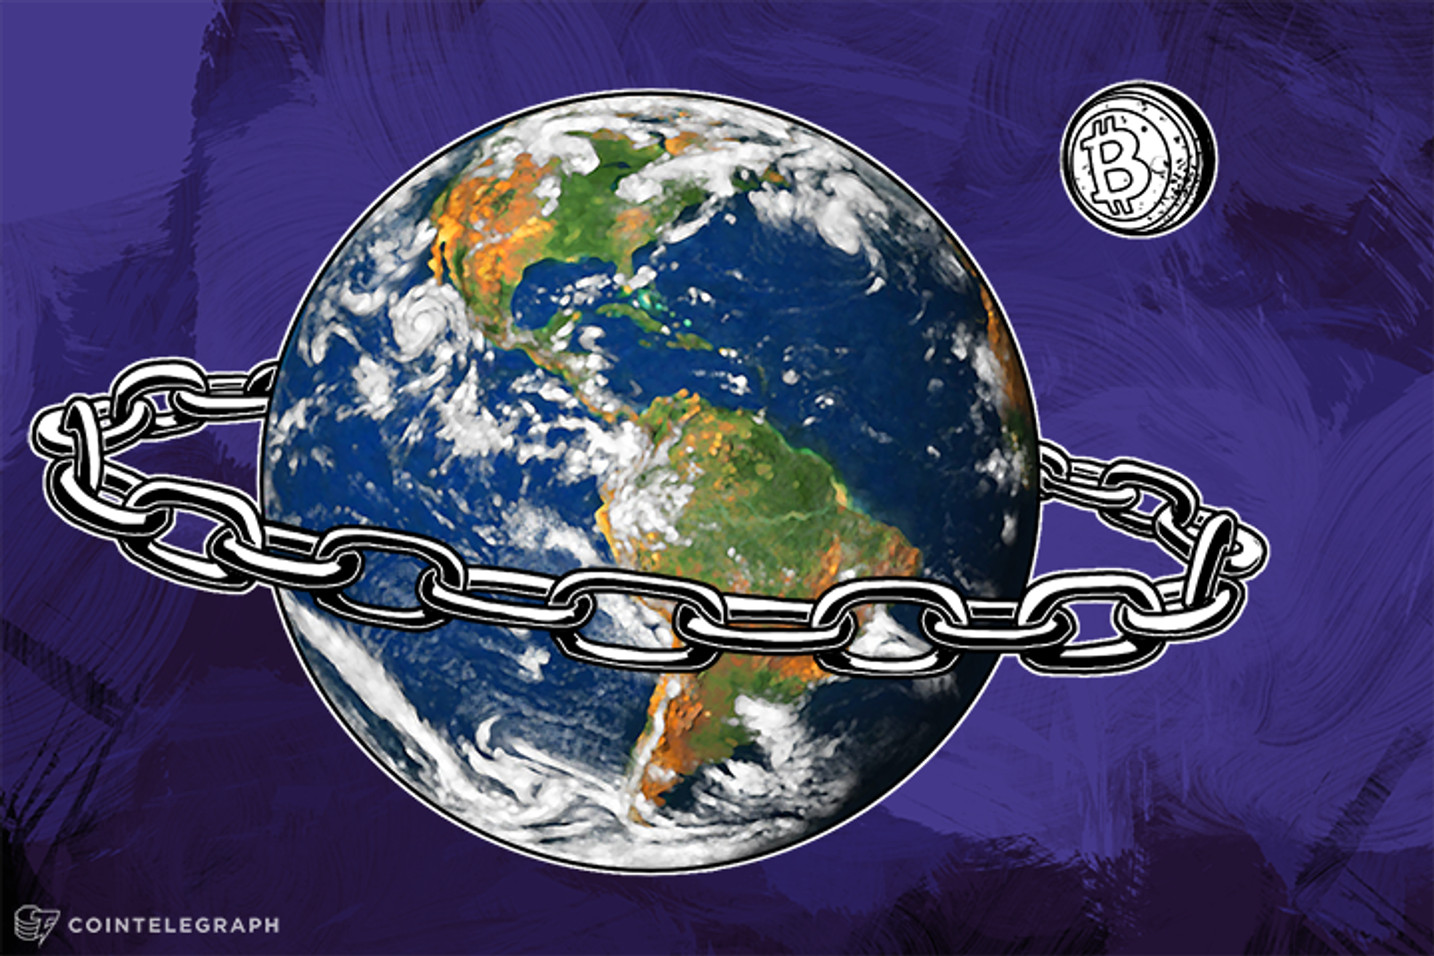 The Economist Asks: Will Bitcoin's Blockchain Change The World?